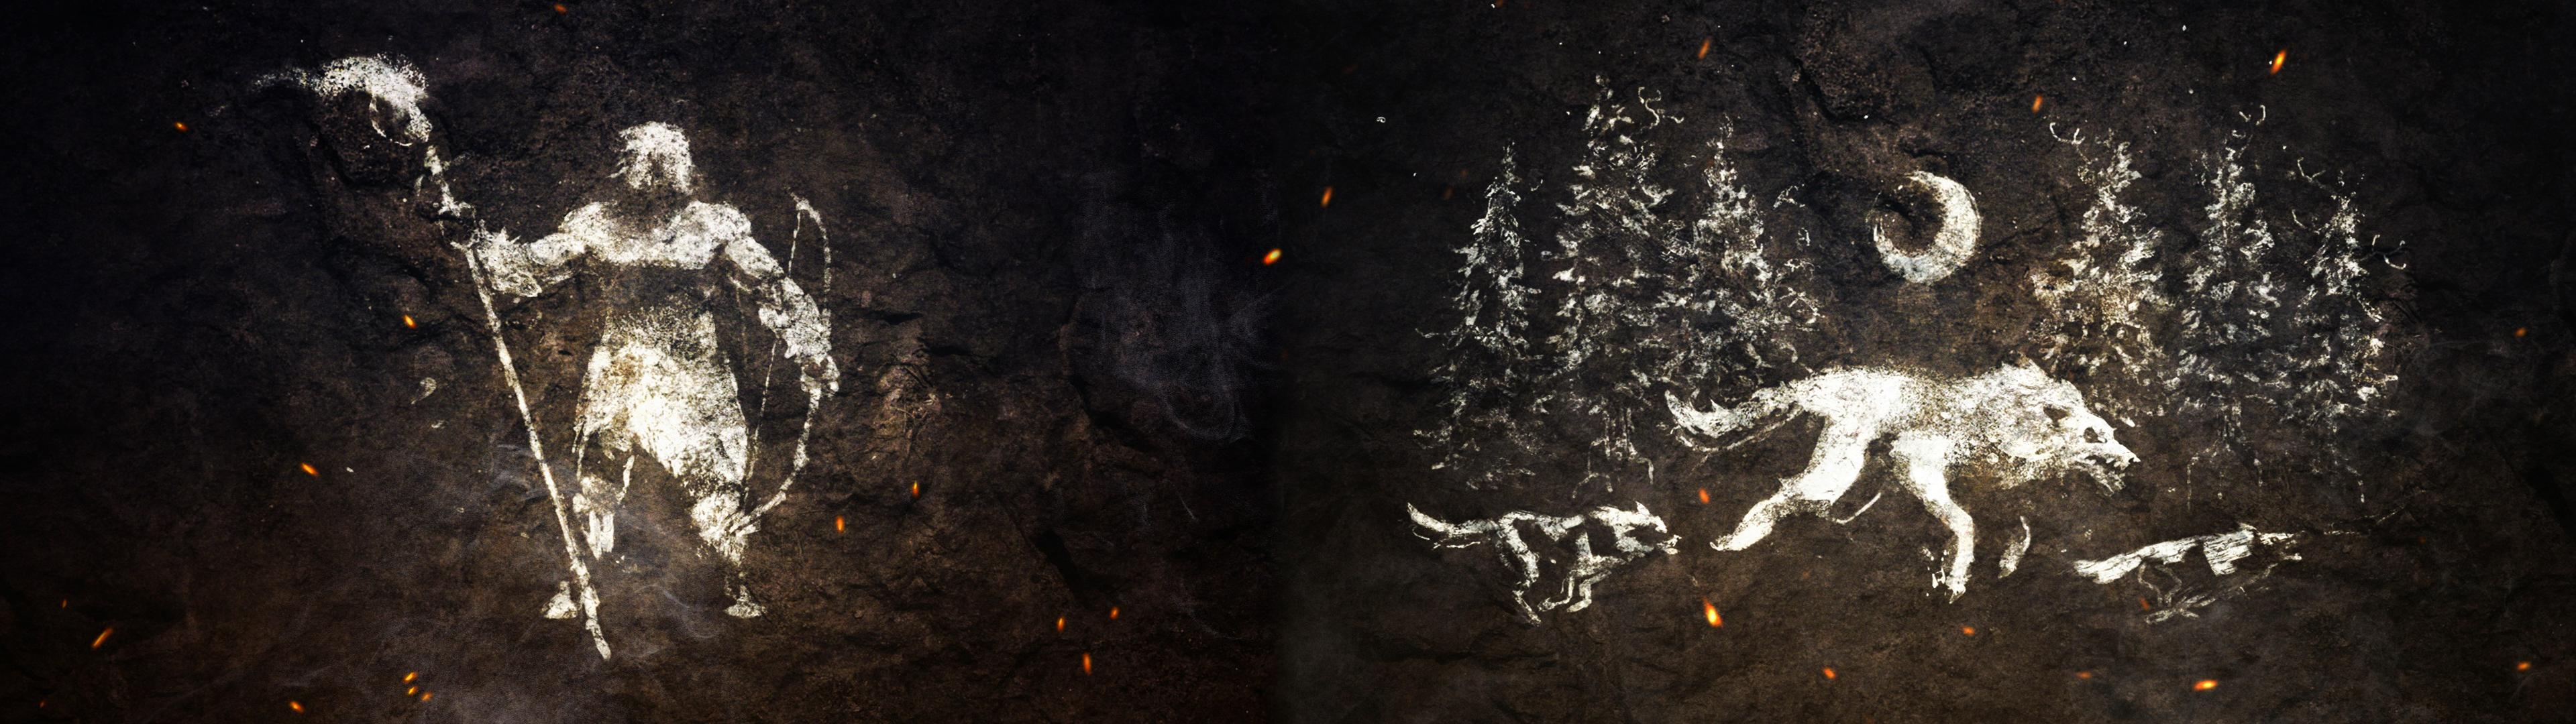 Made-a-FarCry-Primal-Dual-Monitor-x1080-wallpaper-wp3807925